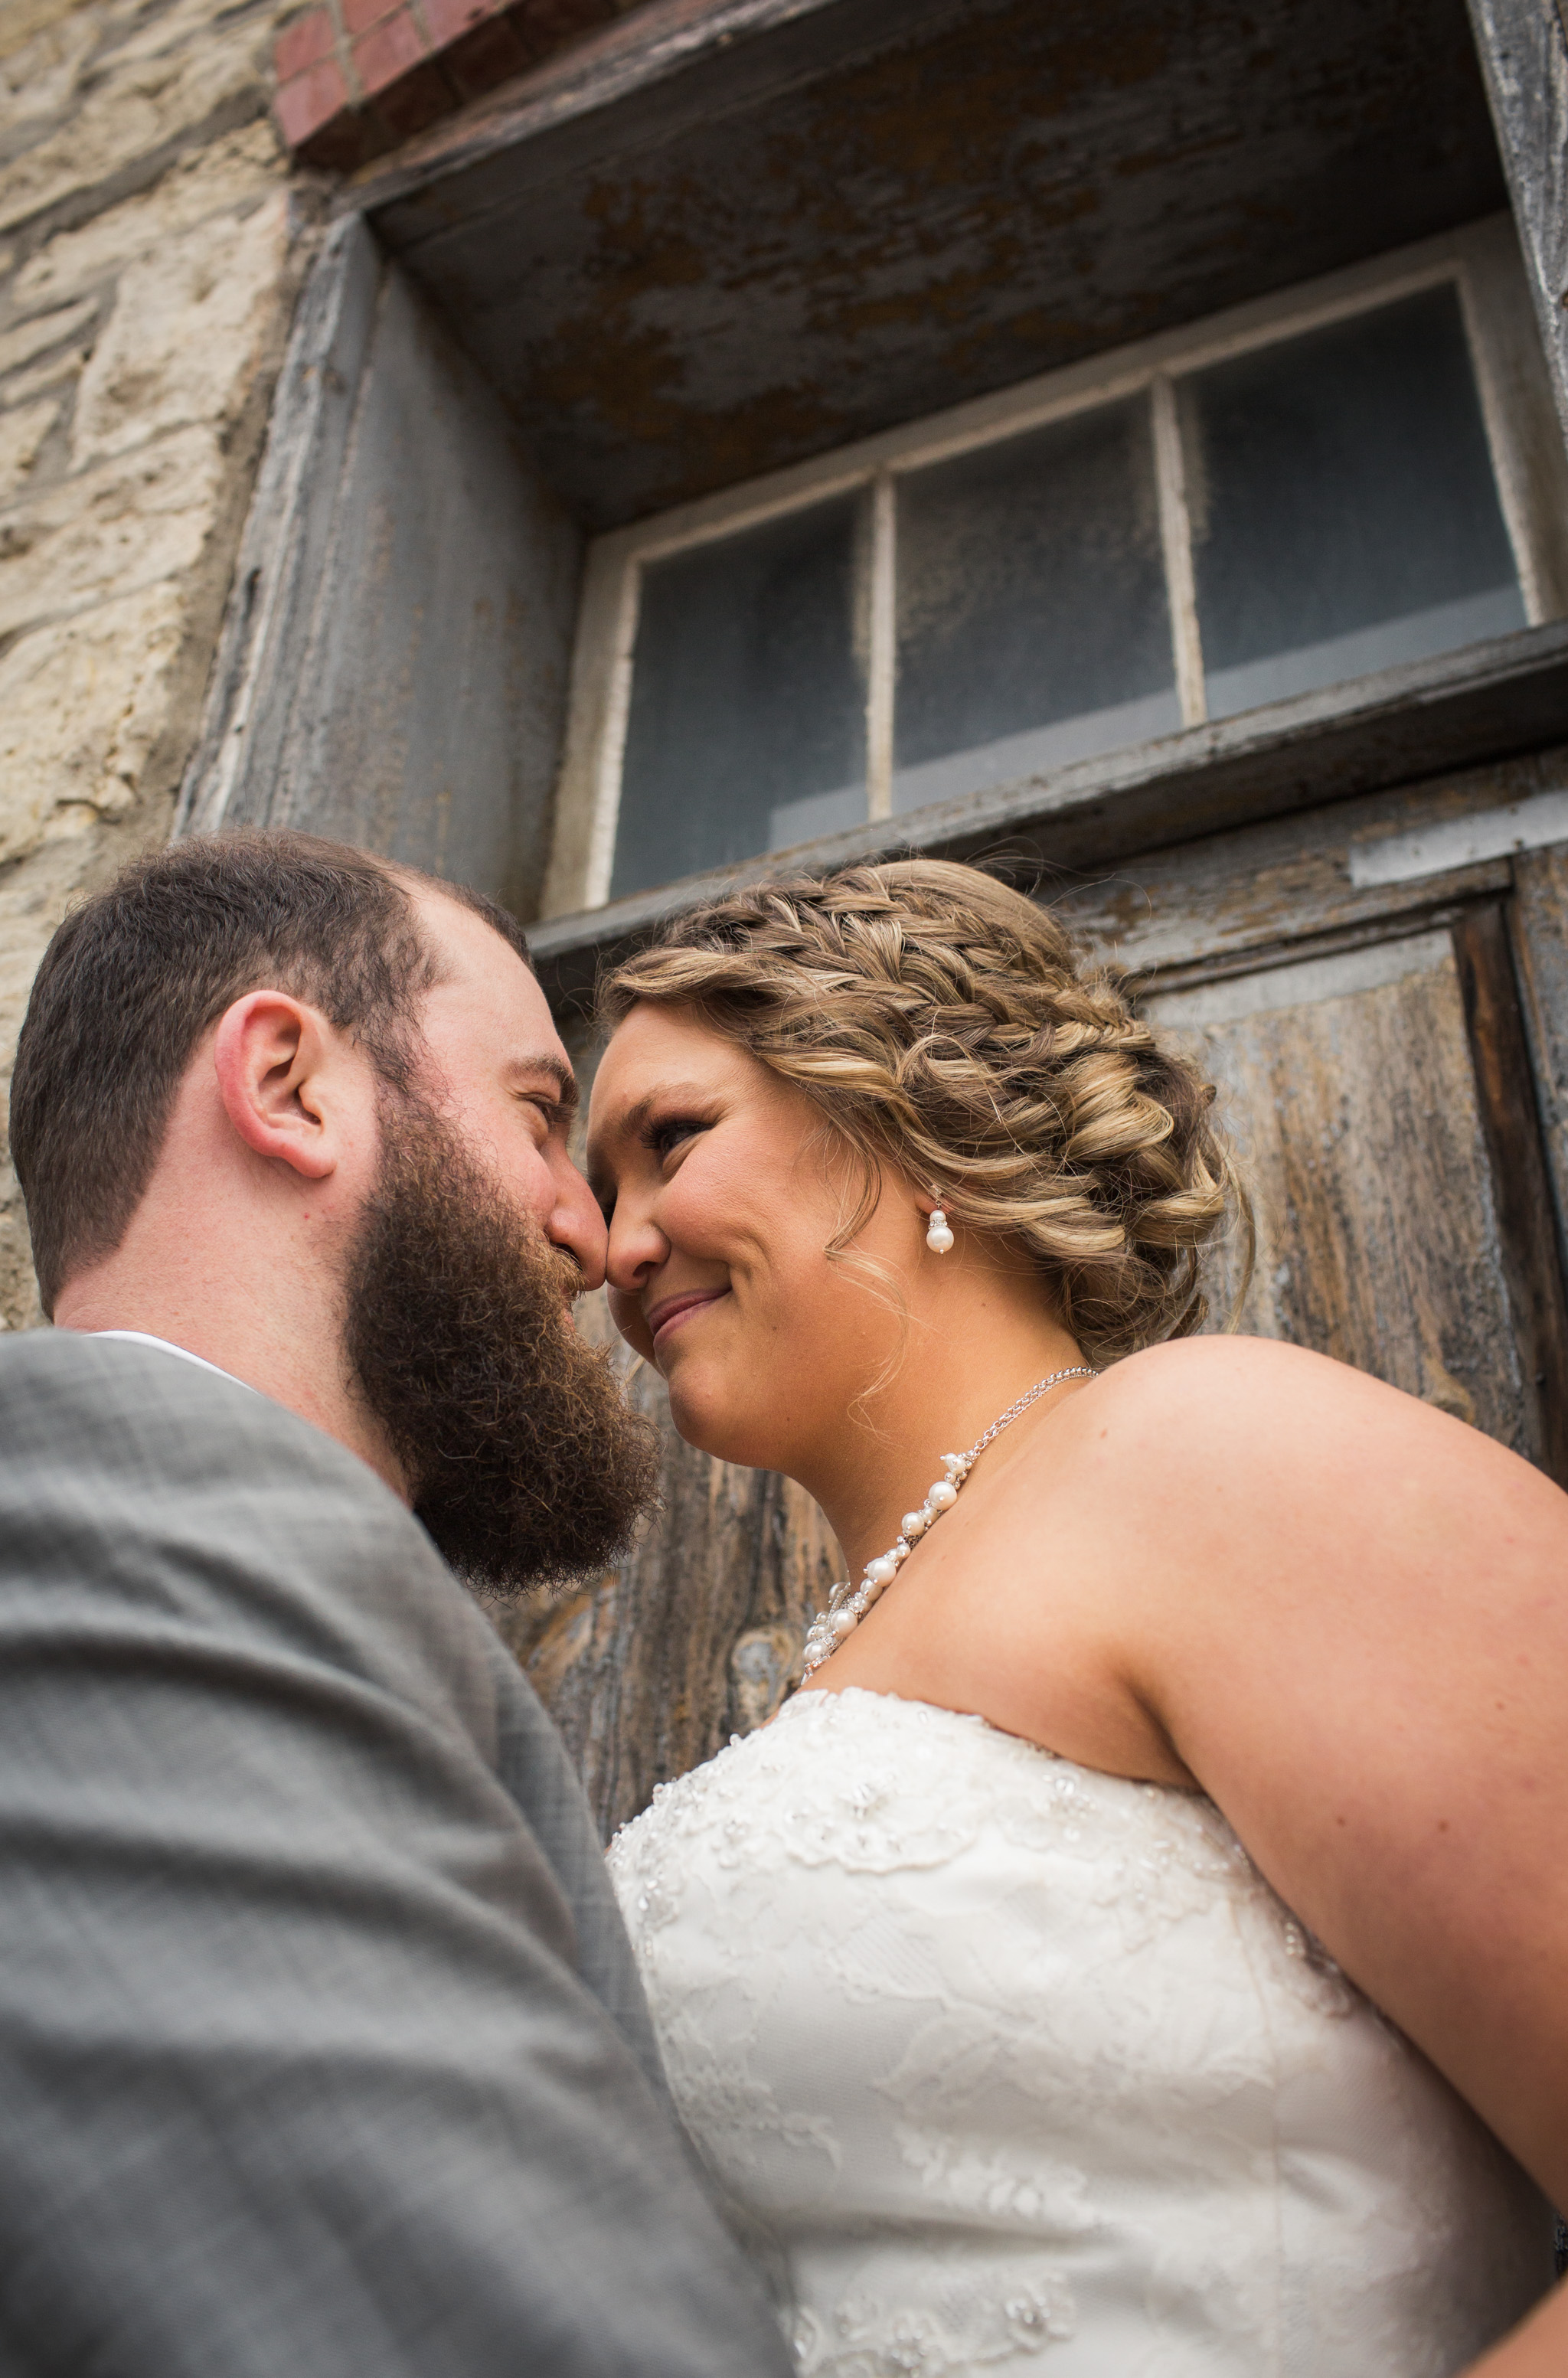 Zibell Spring Wedding, Bride and Groom, Powerful, Connected, Exploration, Laura Duggleby Photography -97.JPG